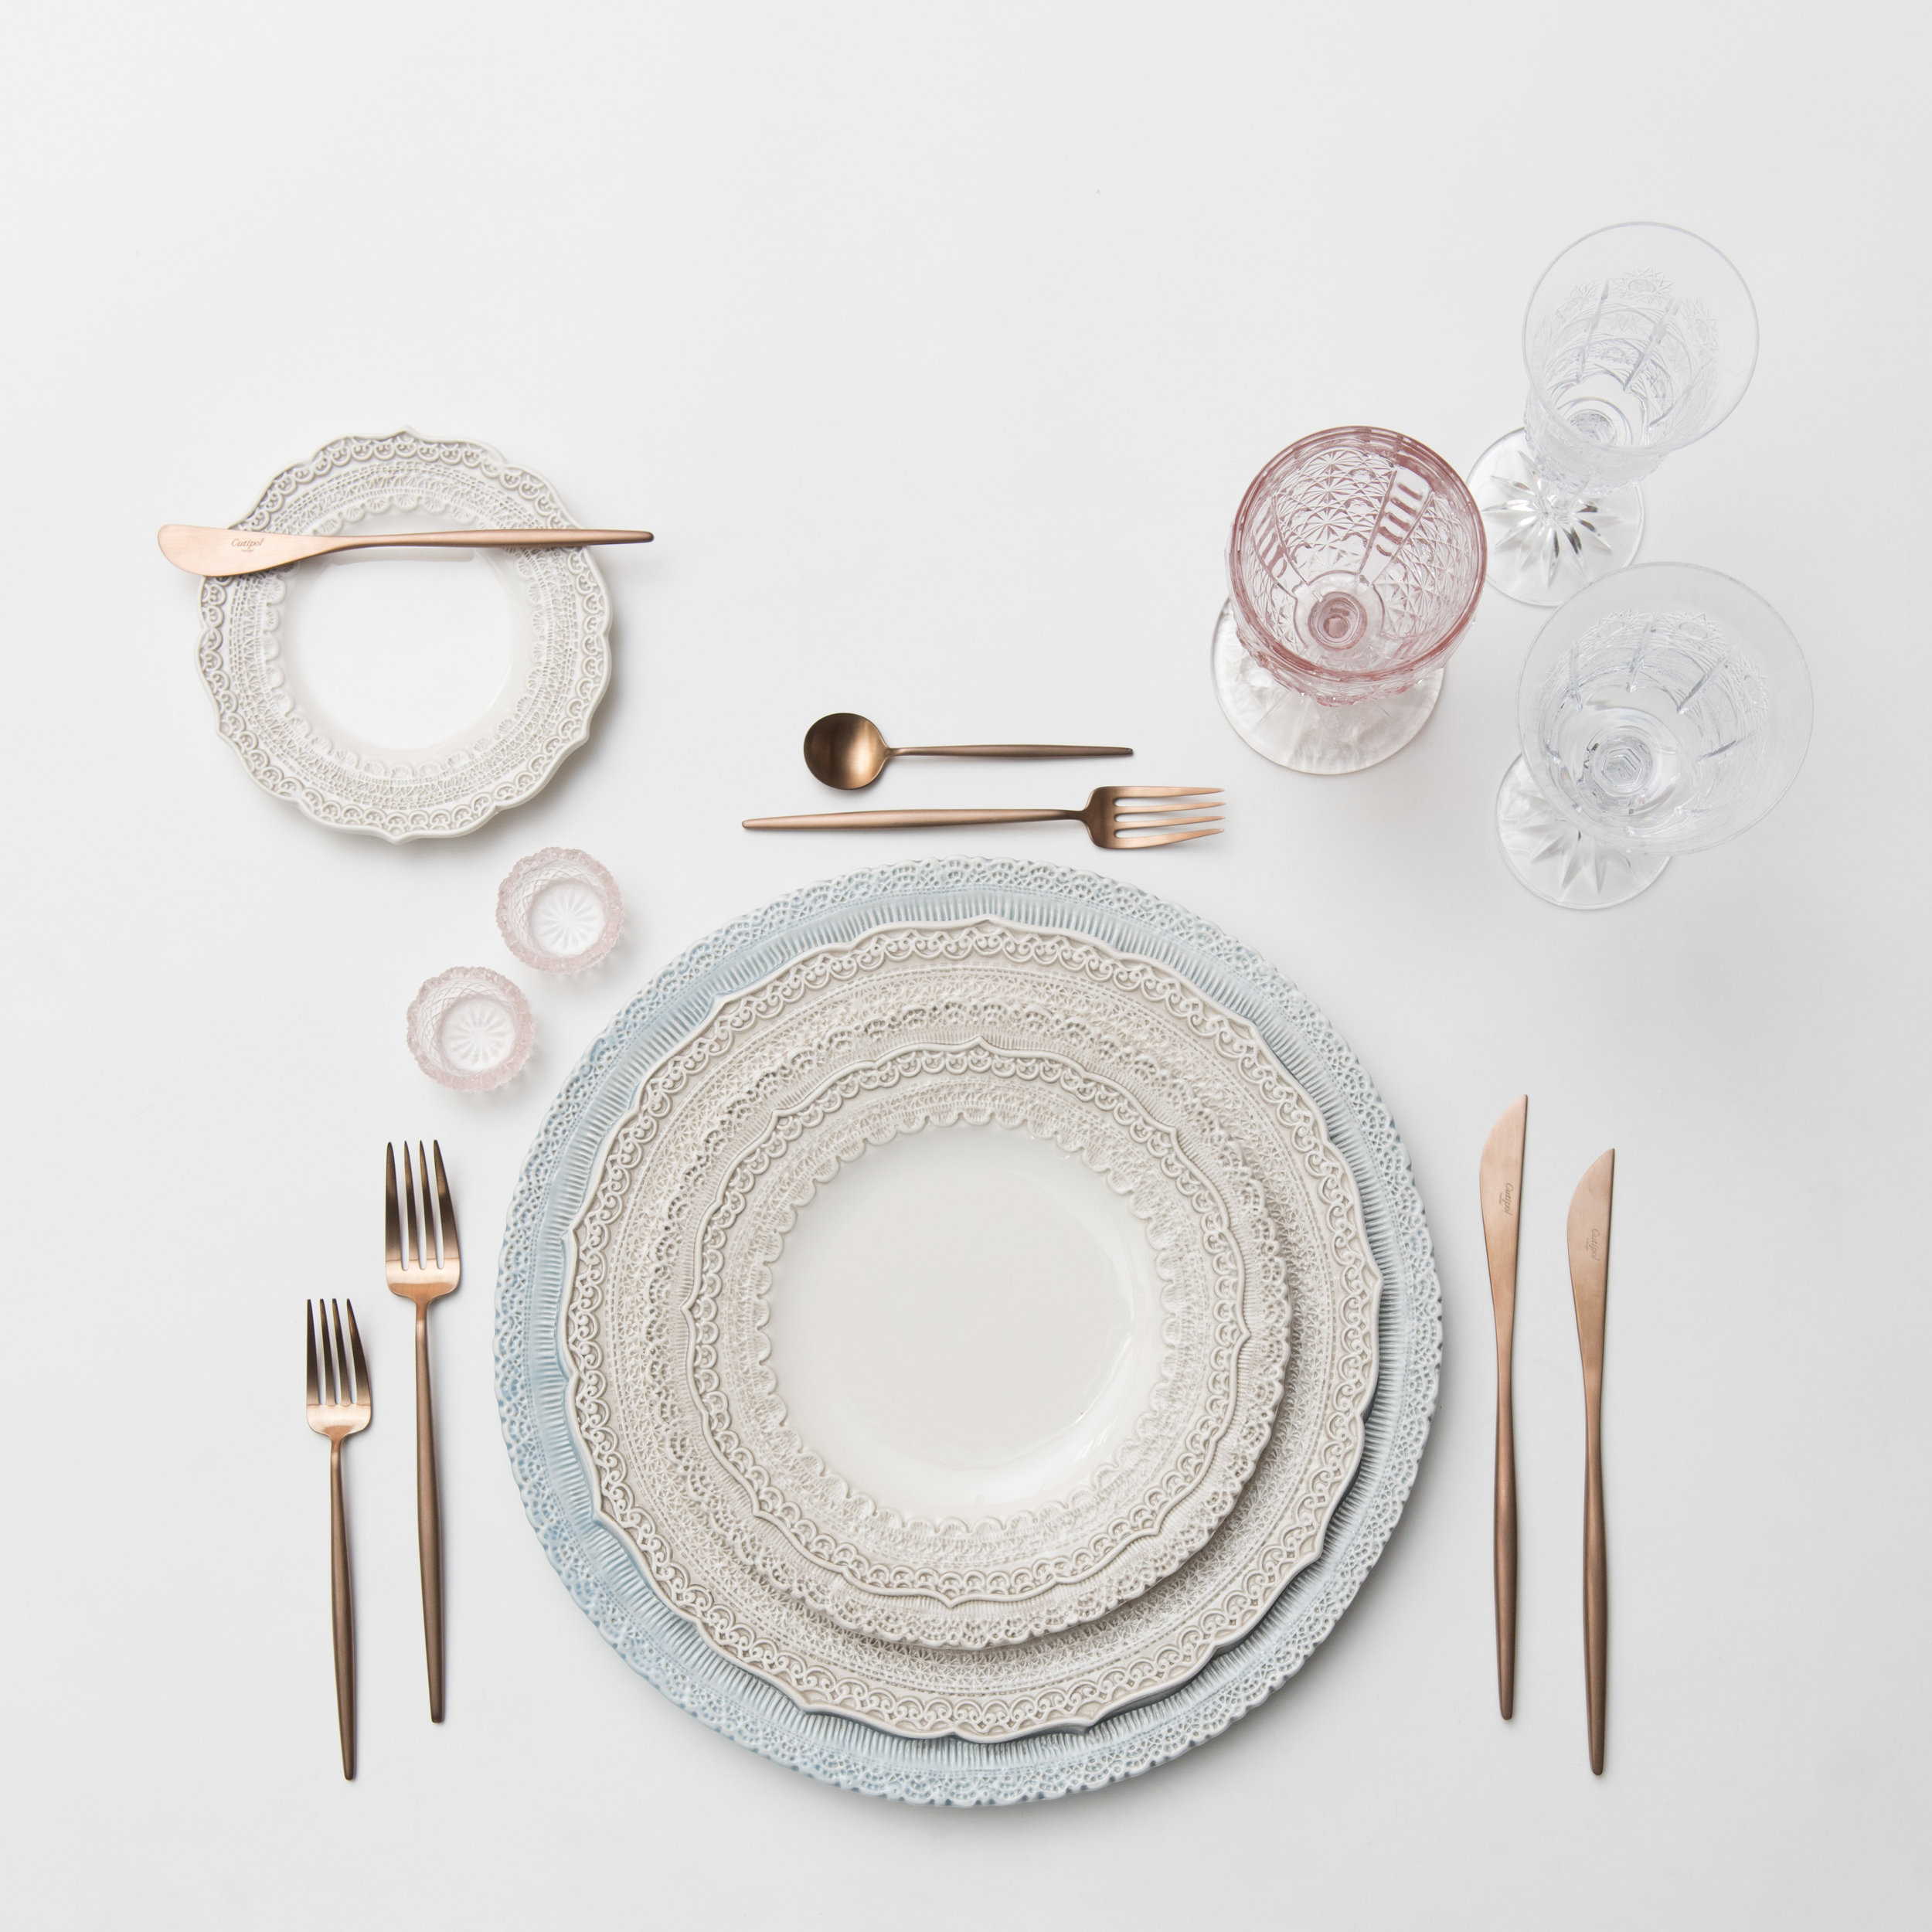 RENT: Lace Chargers in Dusty Blue + Lace Dinnerware in White + Moon Flatware in Brushed Rose Gold + Pink Vintage Goblets + Czech Crystal Stemware + Pink Crystal Salt Cellars   SHOP:Moon Flatware in Brushed Rose Gold